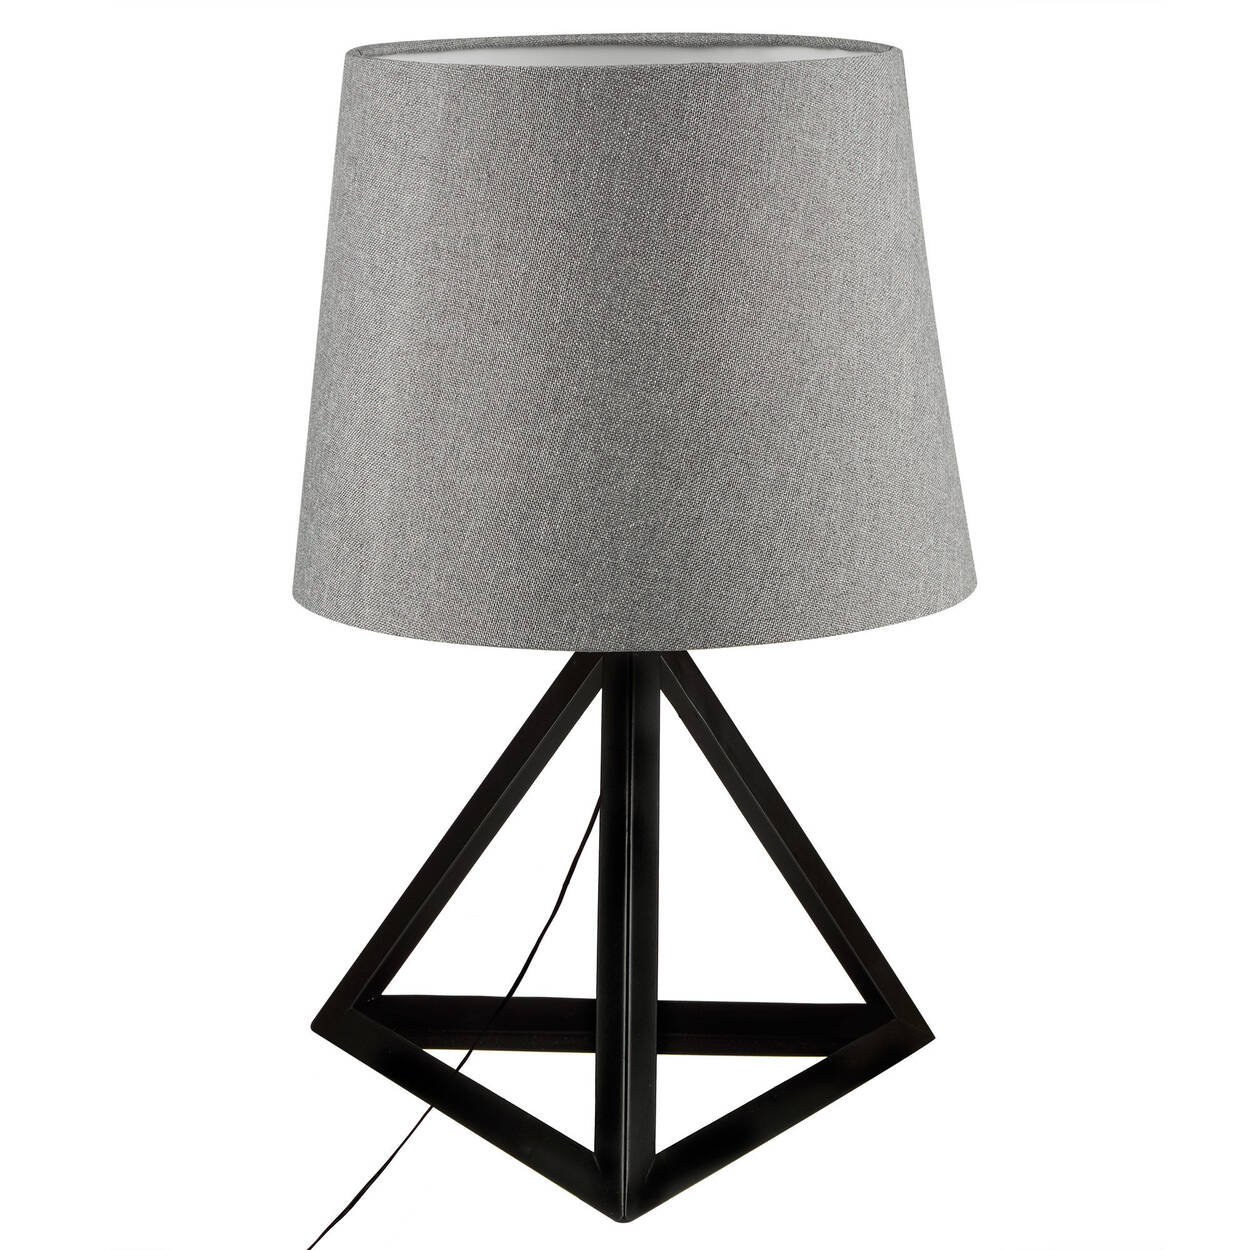 Triangular metal table lamp bouclair triangular metal table lamp mozeypictures Images